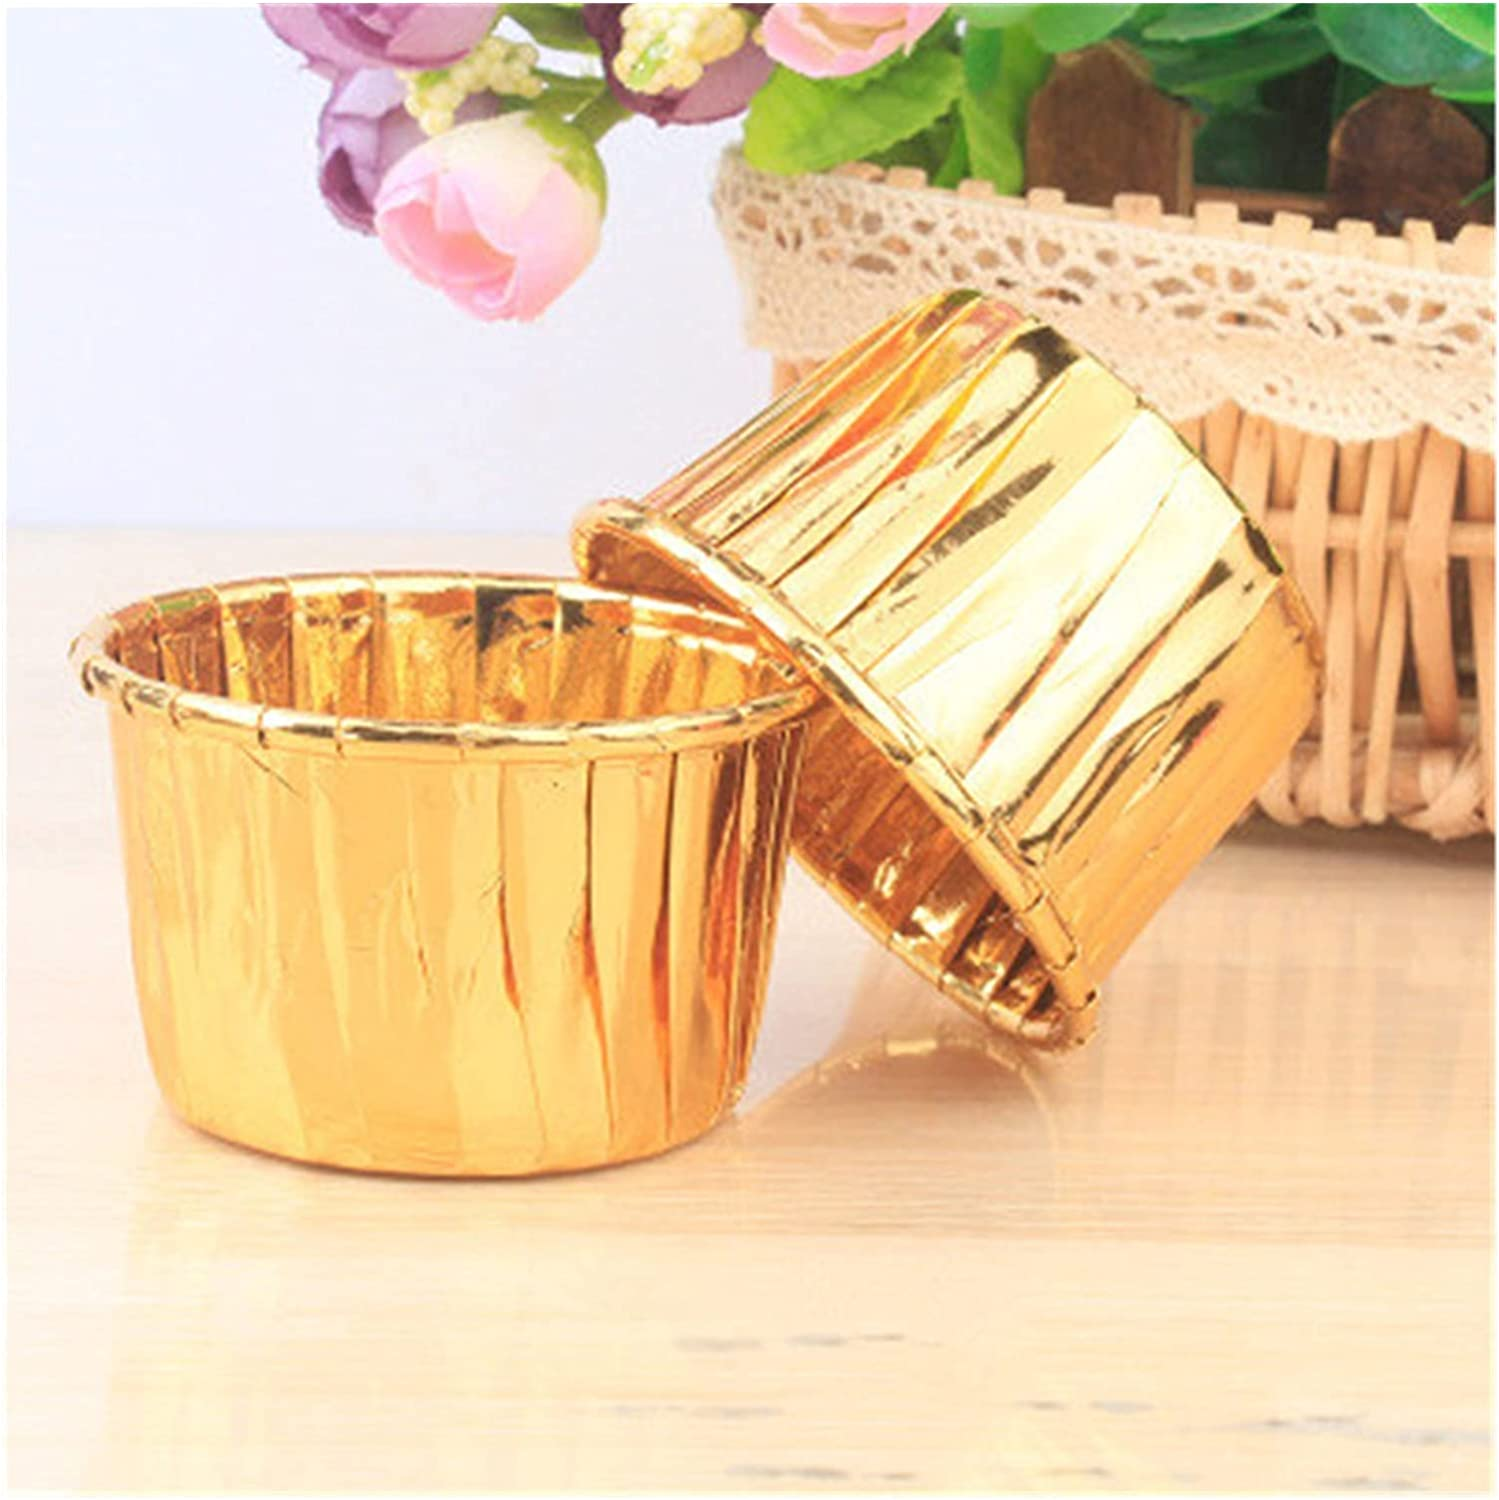 Pastry Cup 50Pcs Oilproof Cupcake Baking Muf Ranking TOP3 Max 84% OFF Liner Cups Wrappers